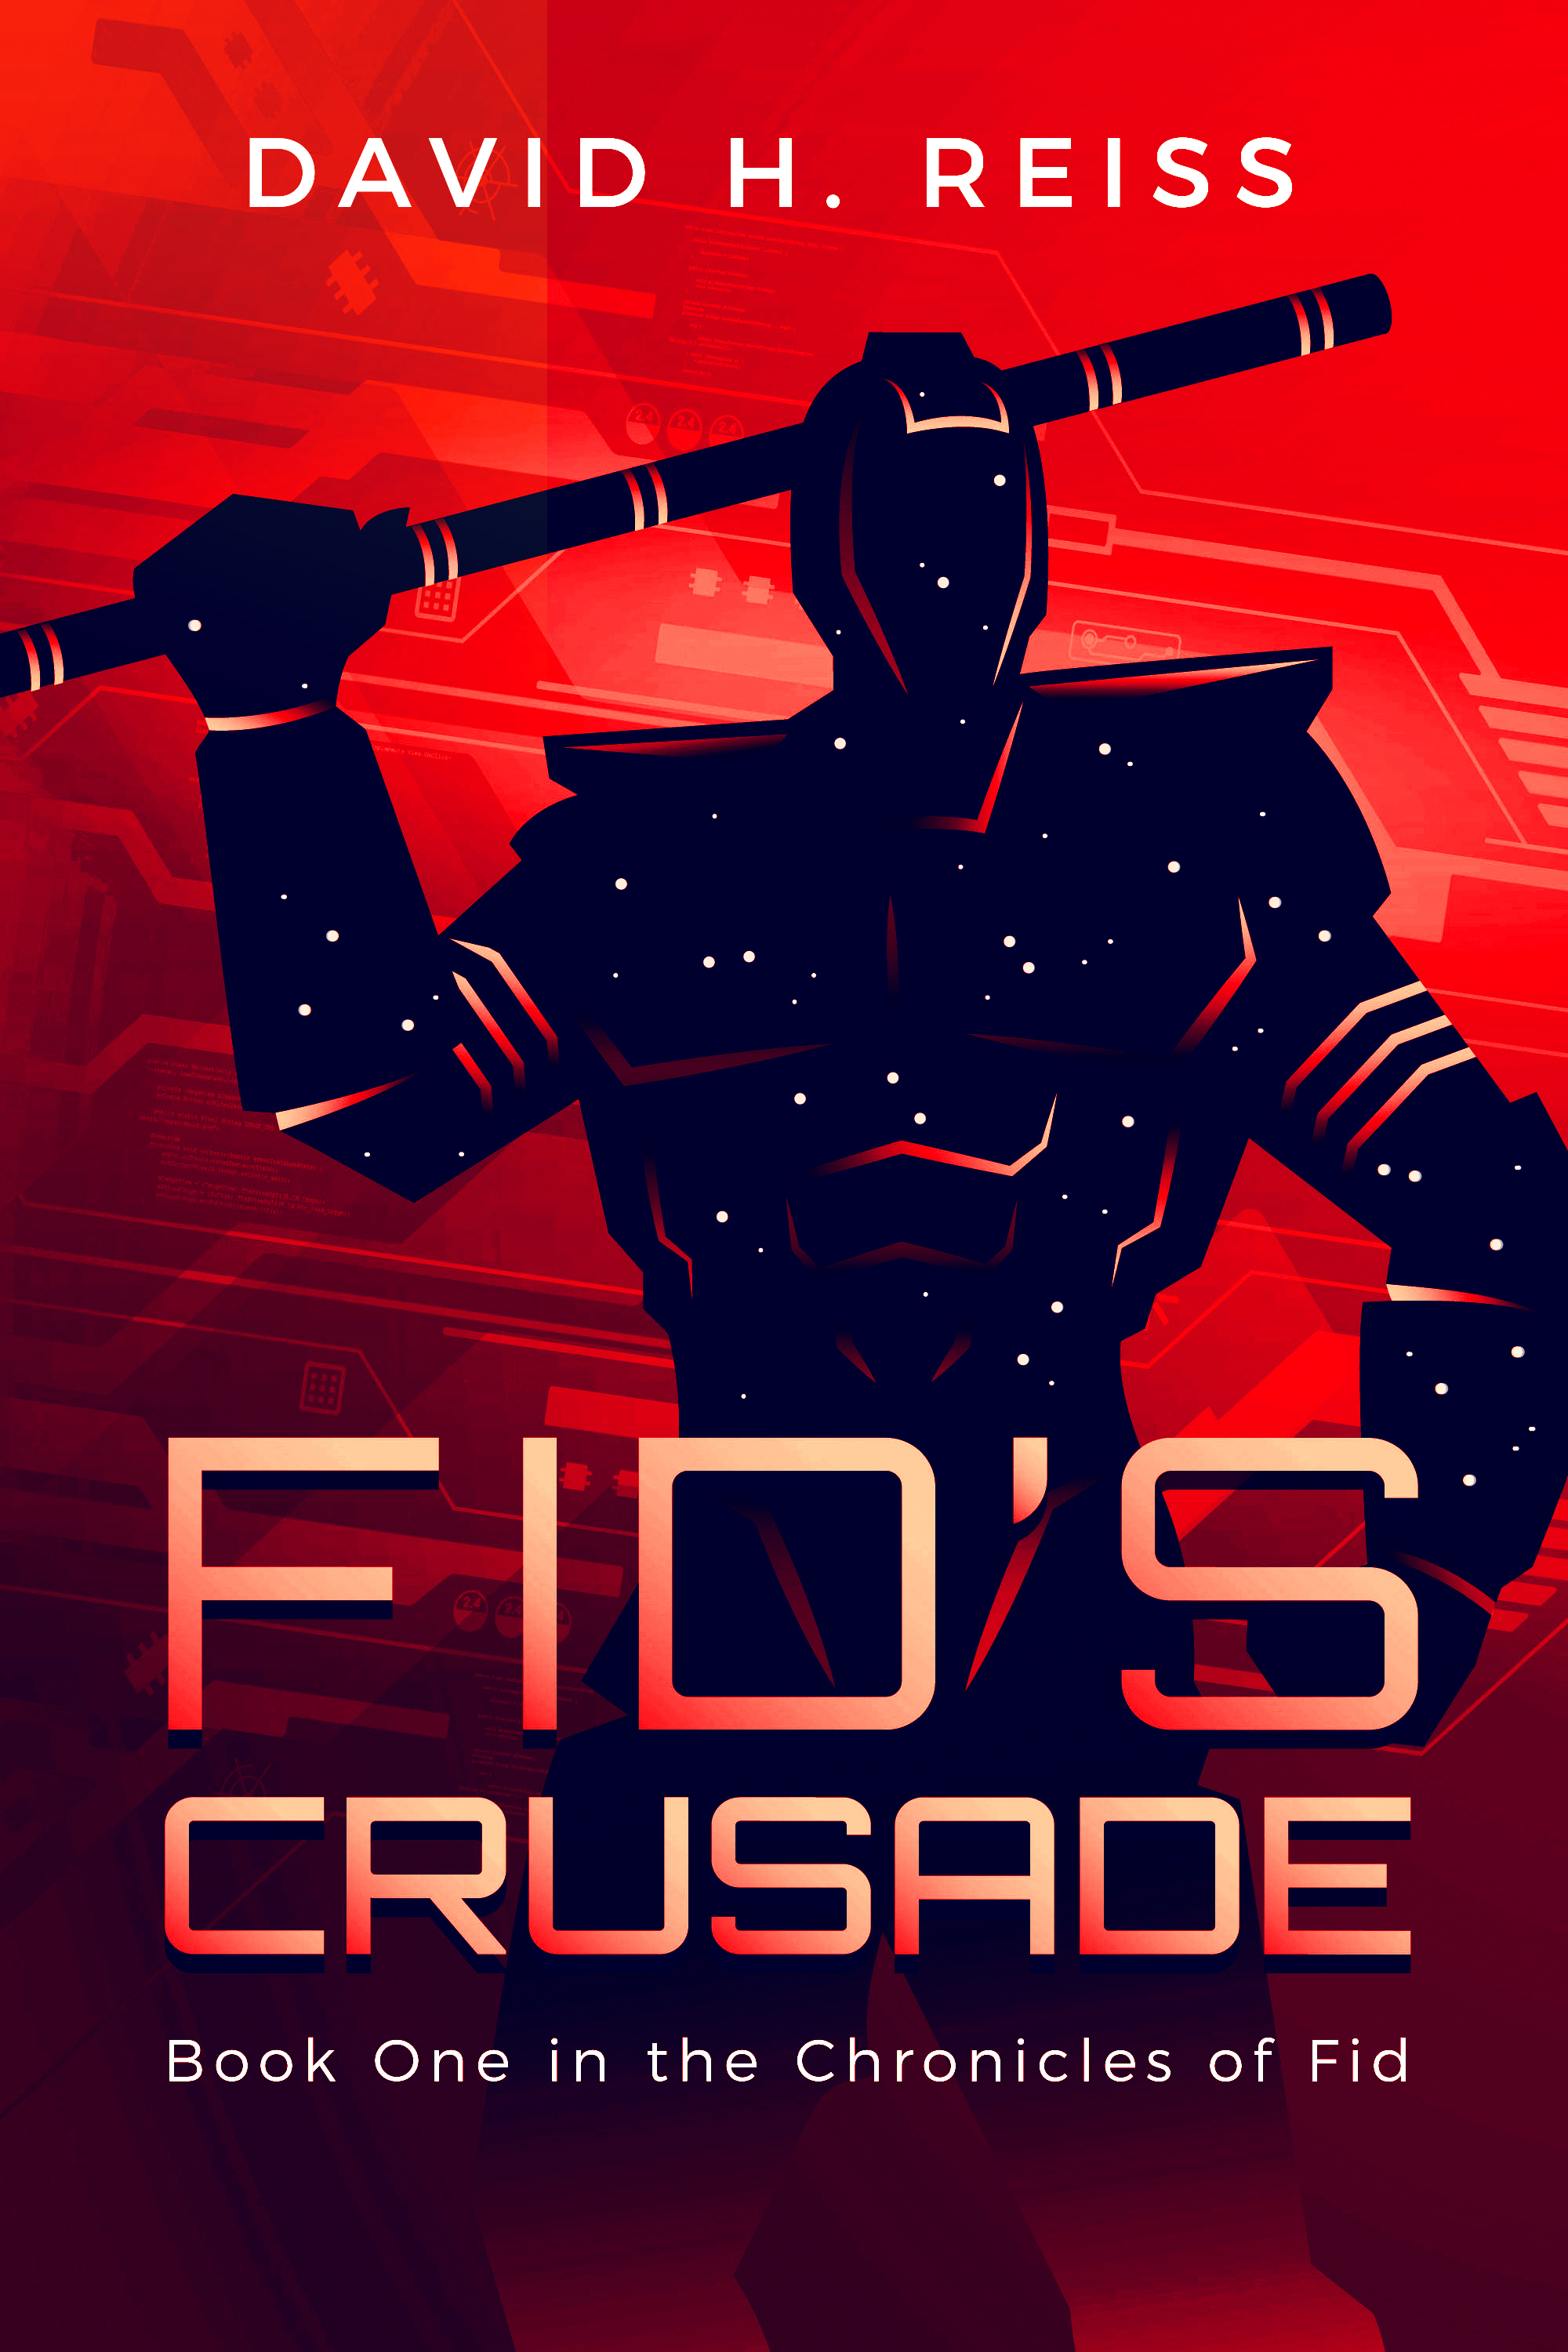 Fids_Crusade_Cover - David Reiss.jpg